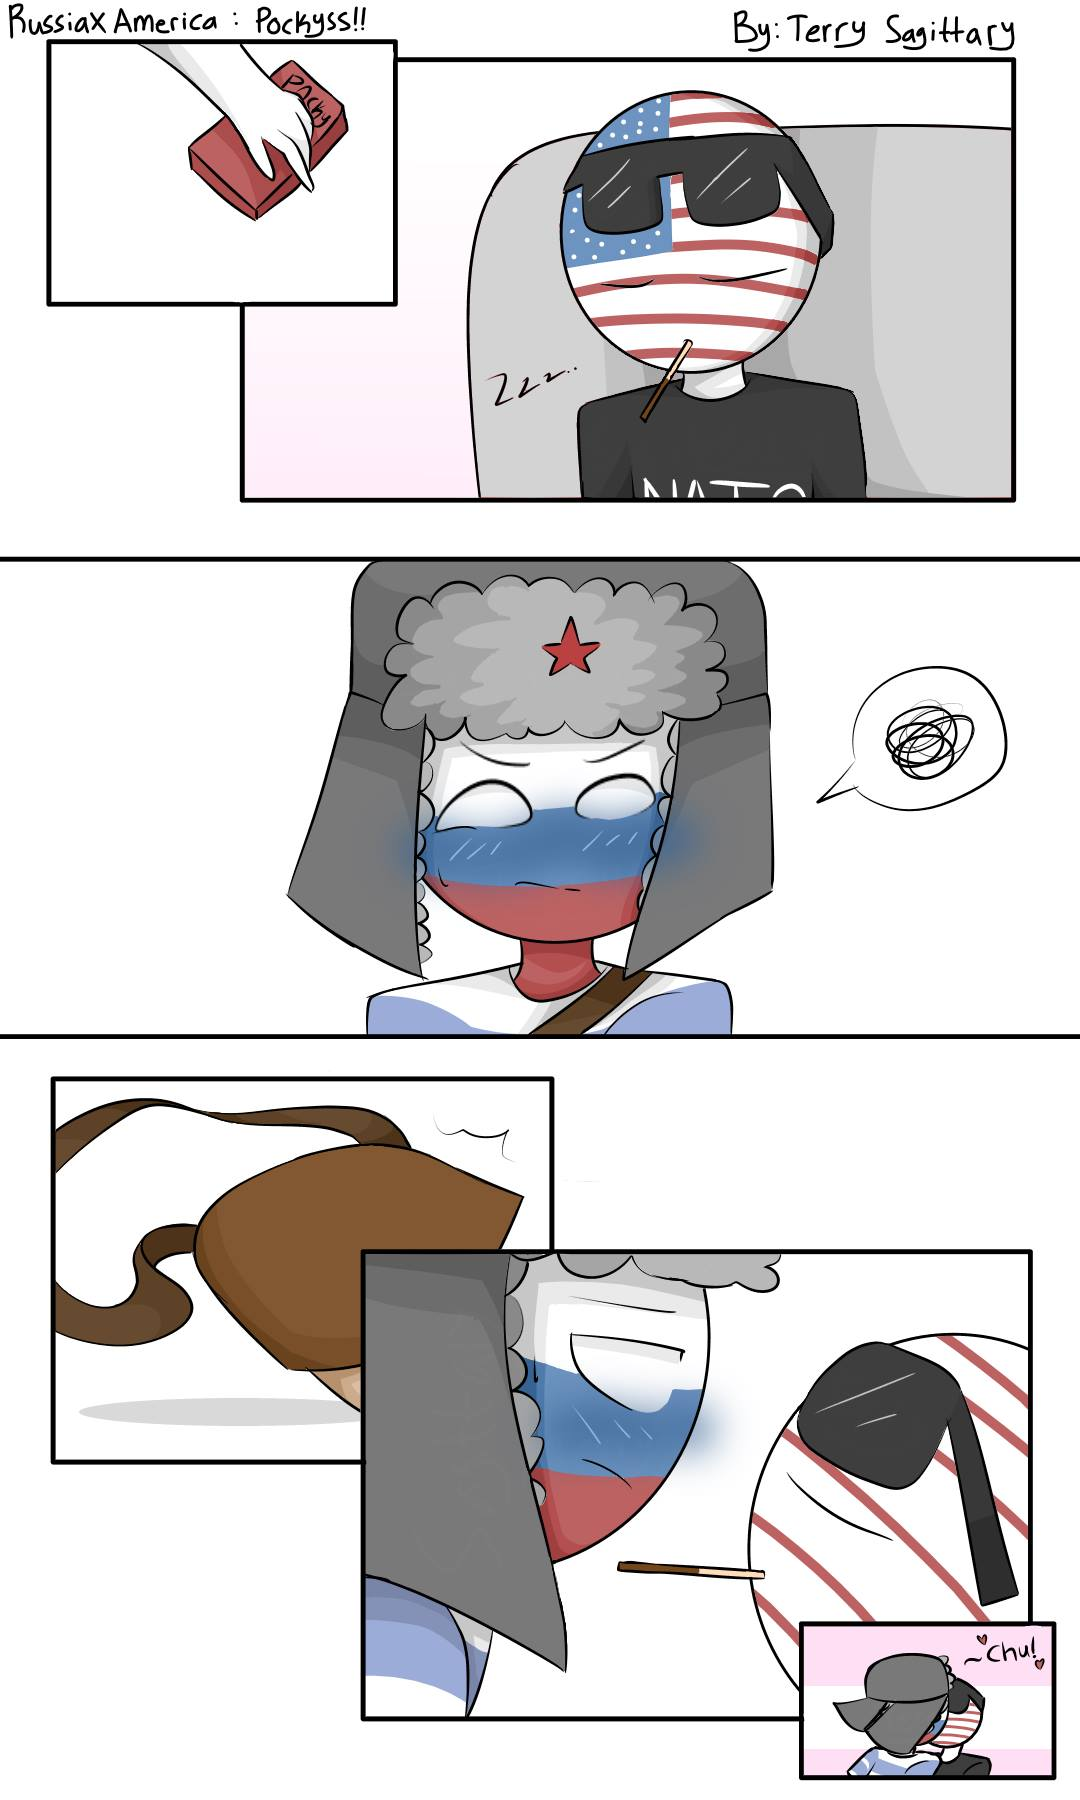 Russia x America by terry Sagittary - CountryHumans